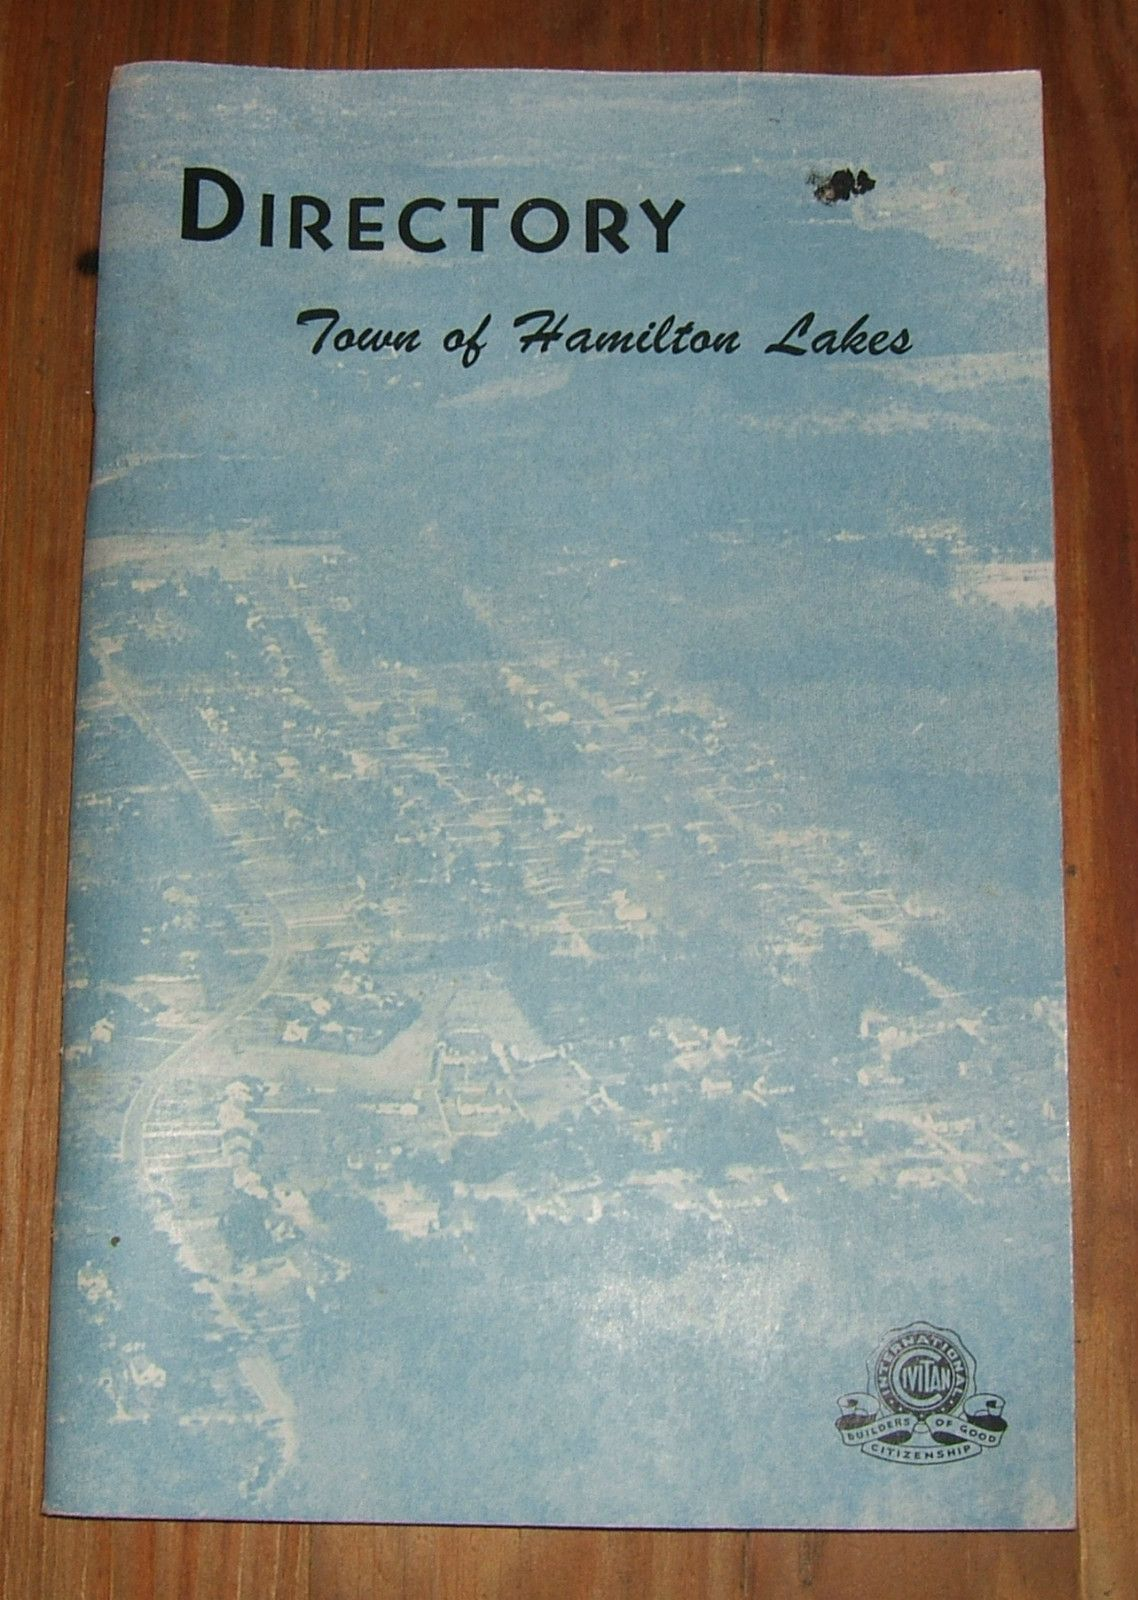 1953 directory of the TOWN OF HAMILTON LAKES Greensboro, NC North Carolina